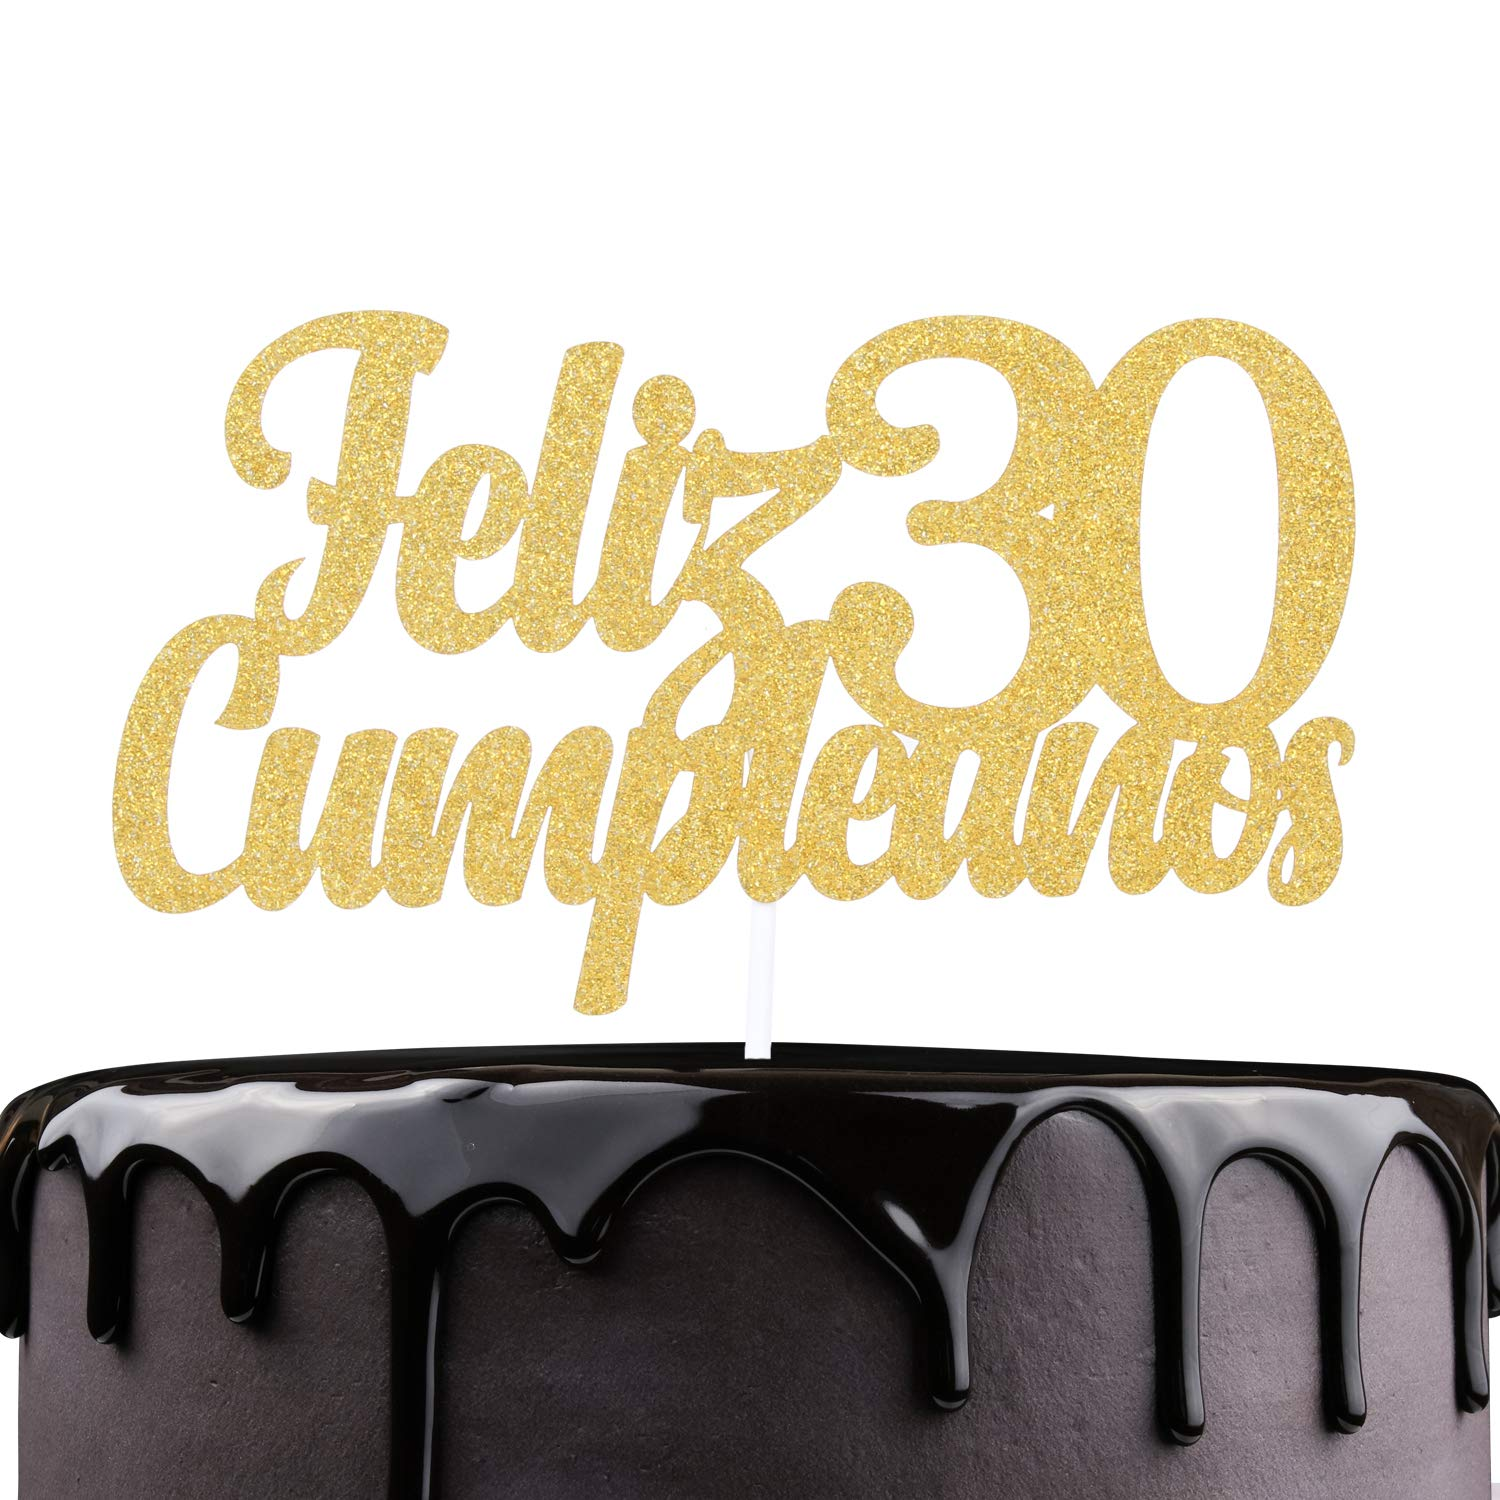 Feliz Cumpleaños 30th Birthday Cake Topper - Gold Glitter Spanish Thirty Years Old Adorno De Cake - Slaying Dirty 30 - Man Woman Trigésimo Años ...